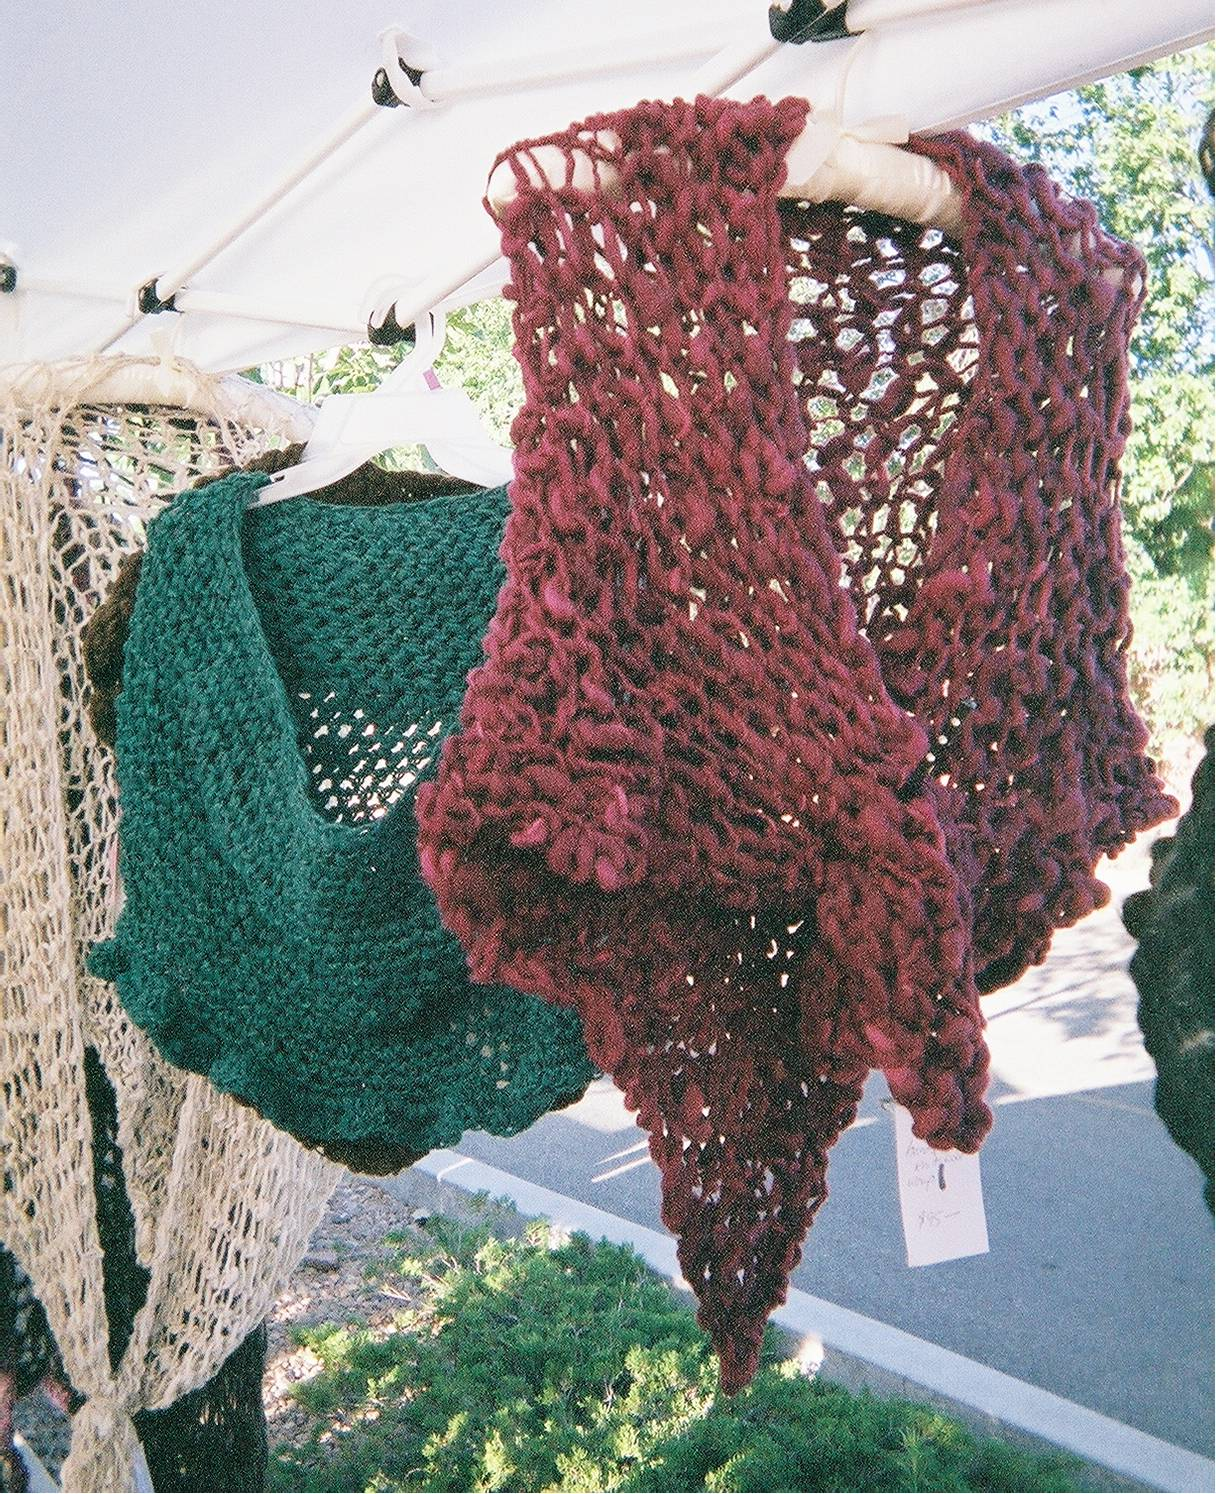 Crochet And Knitting : ... Knit Tina\s How To Design Natural Fiber Yarn for Knitting, Crochet